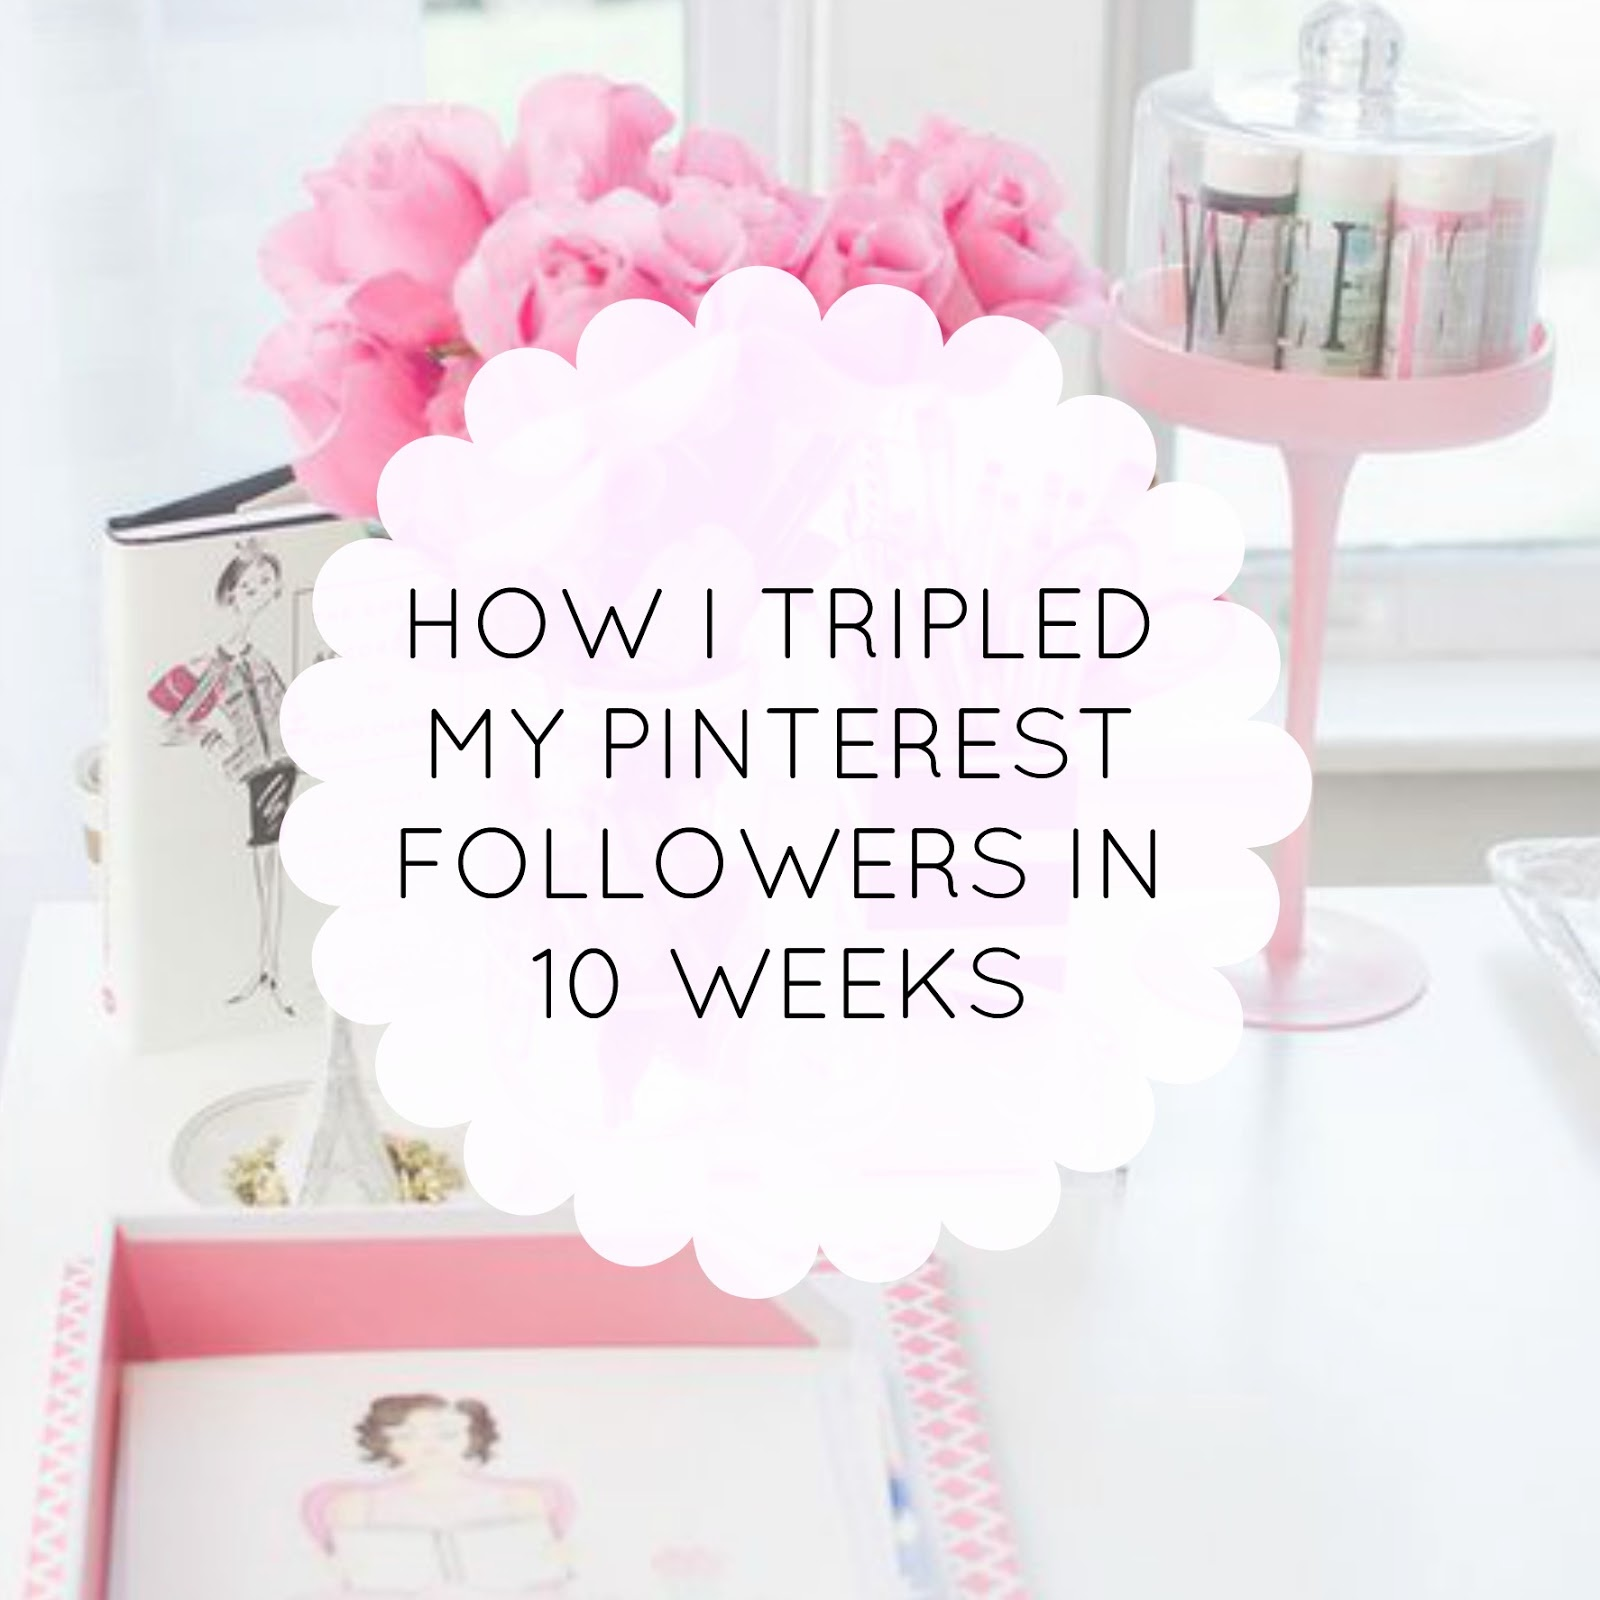 how to triple pinterest traffic and followers